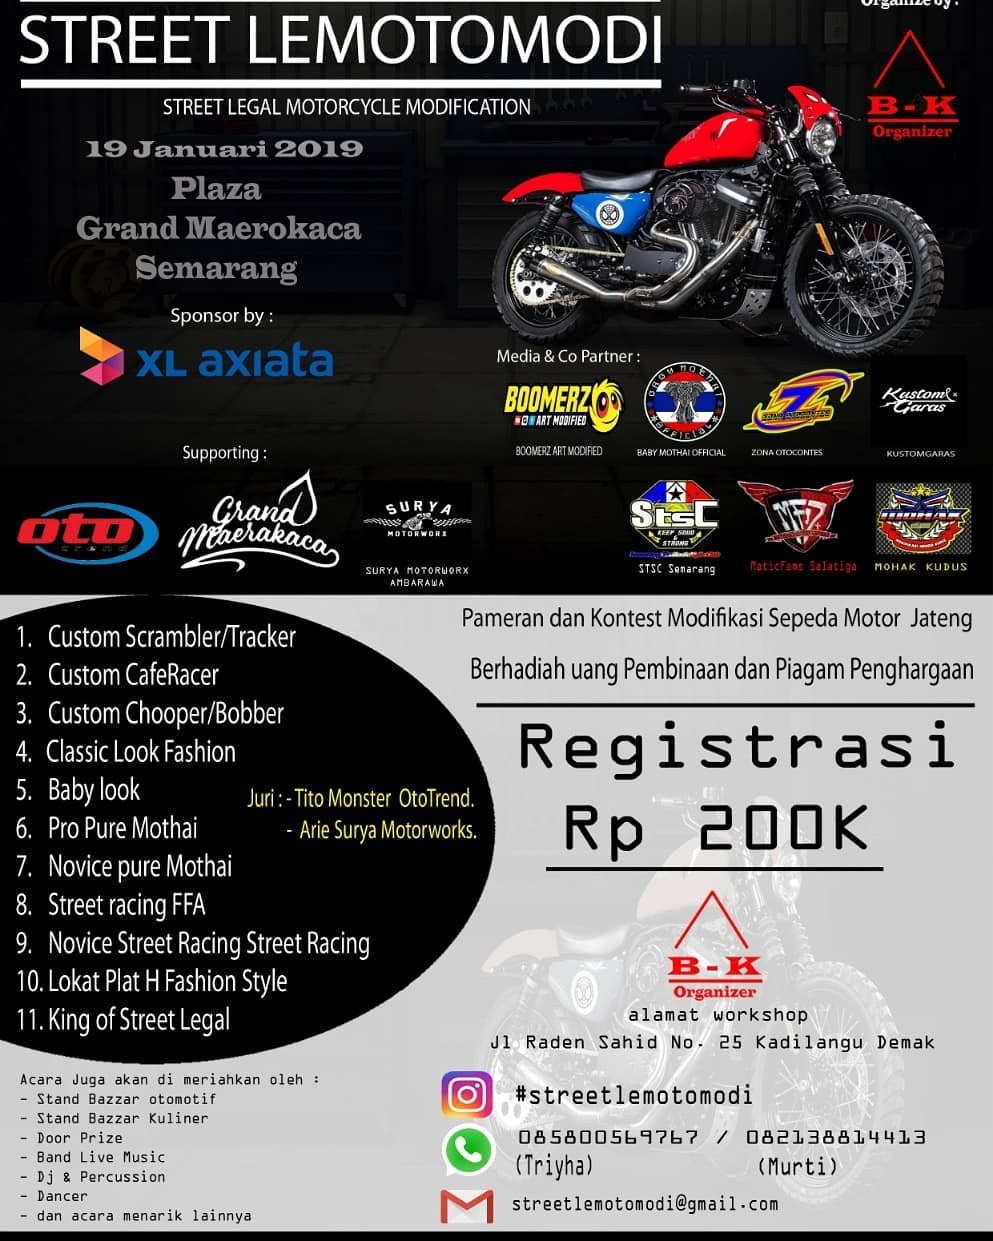 Street Legal Motorcycle Modification Contest